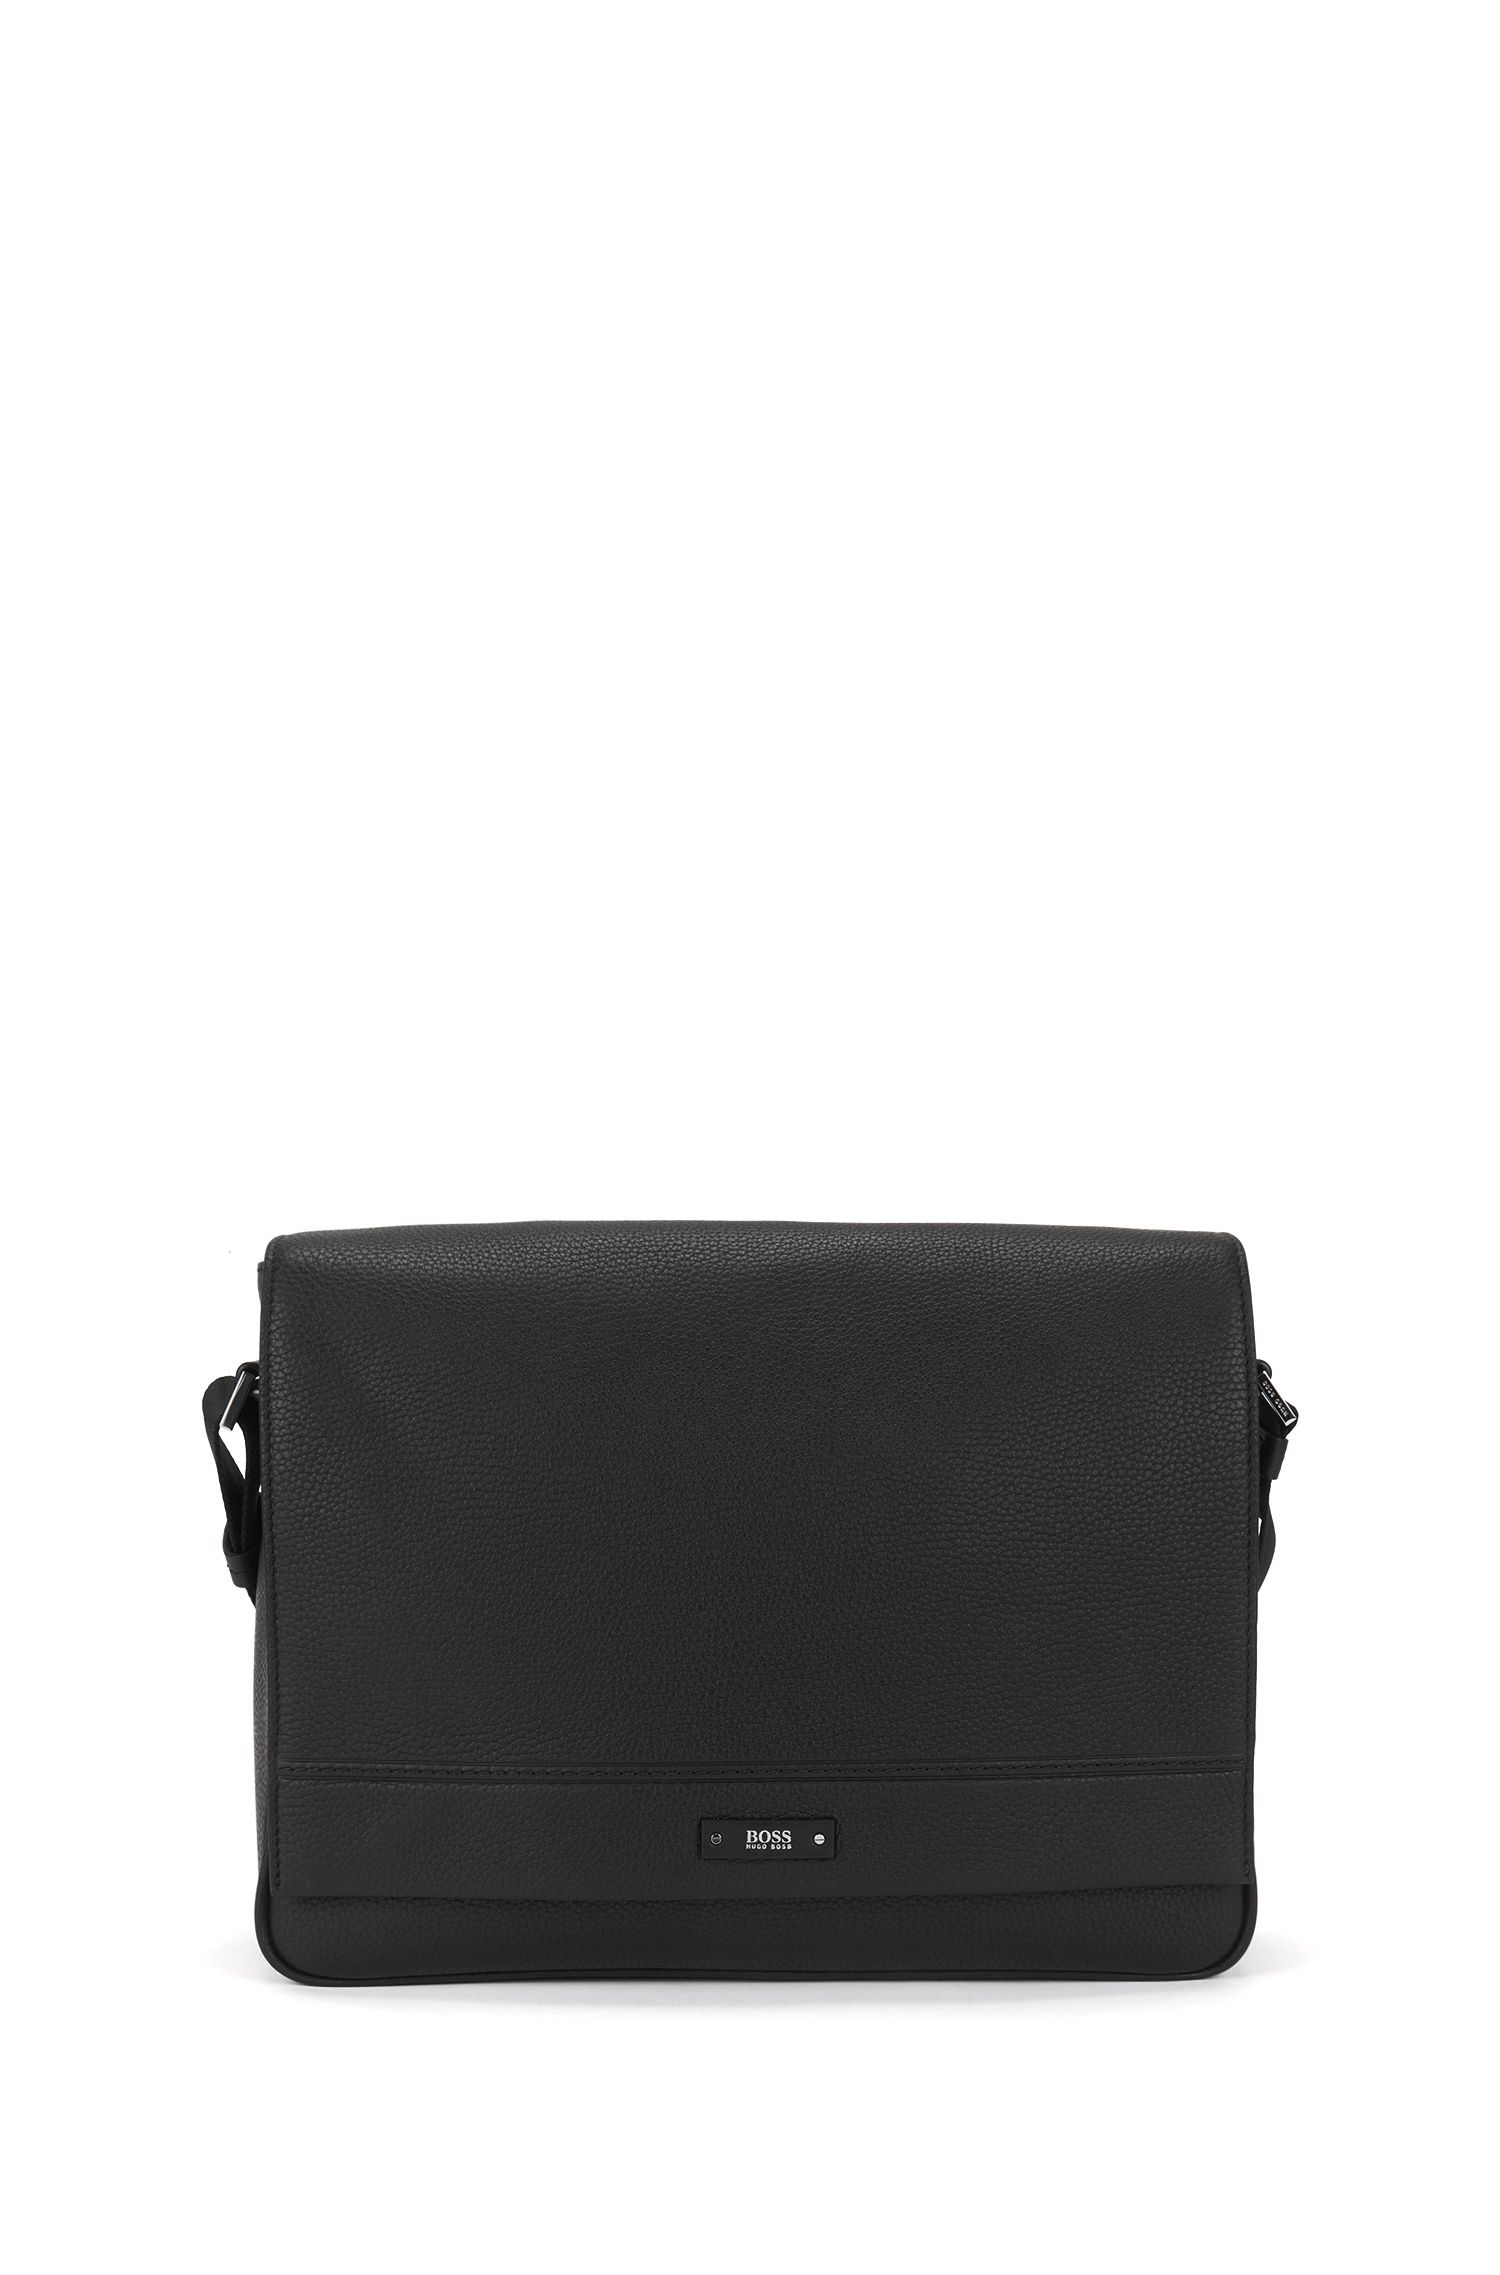 Messenger bag in soft grained leather